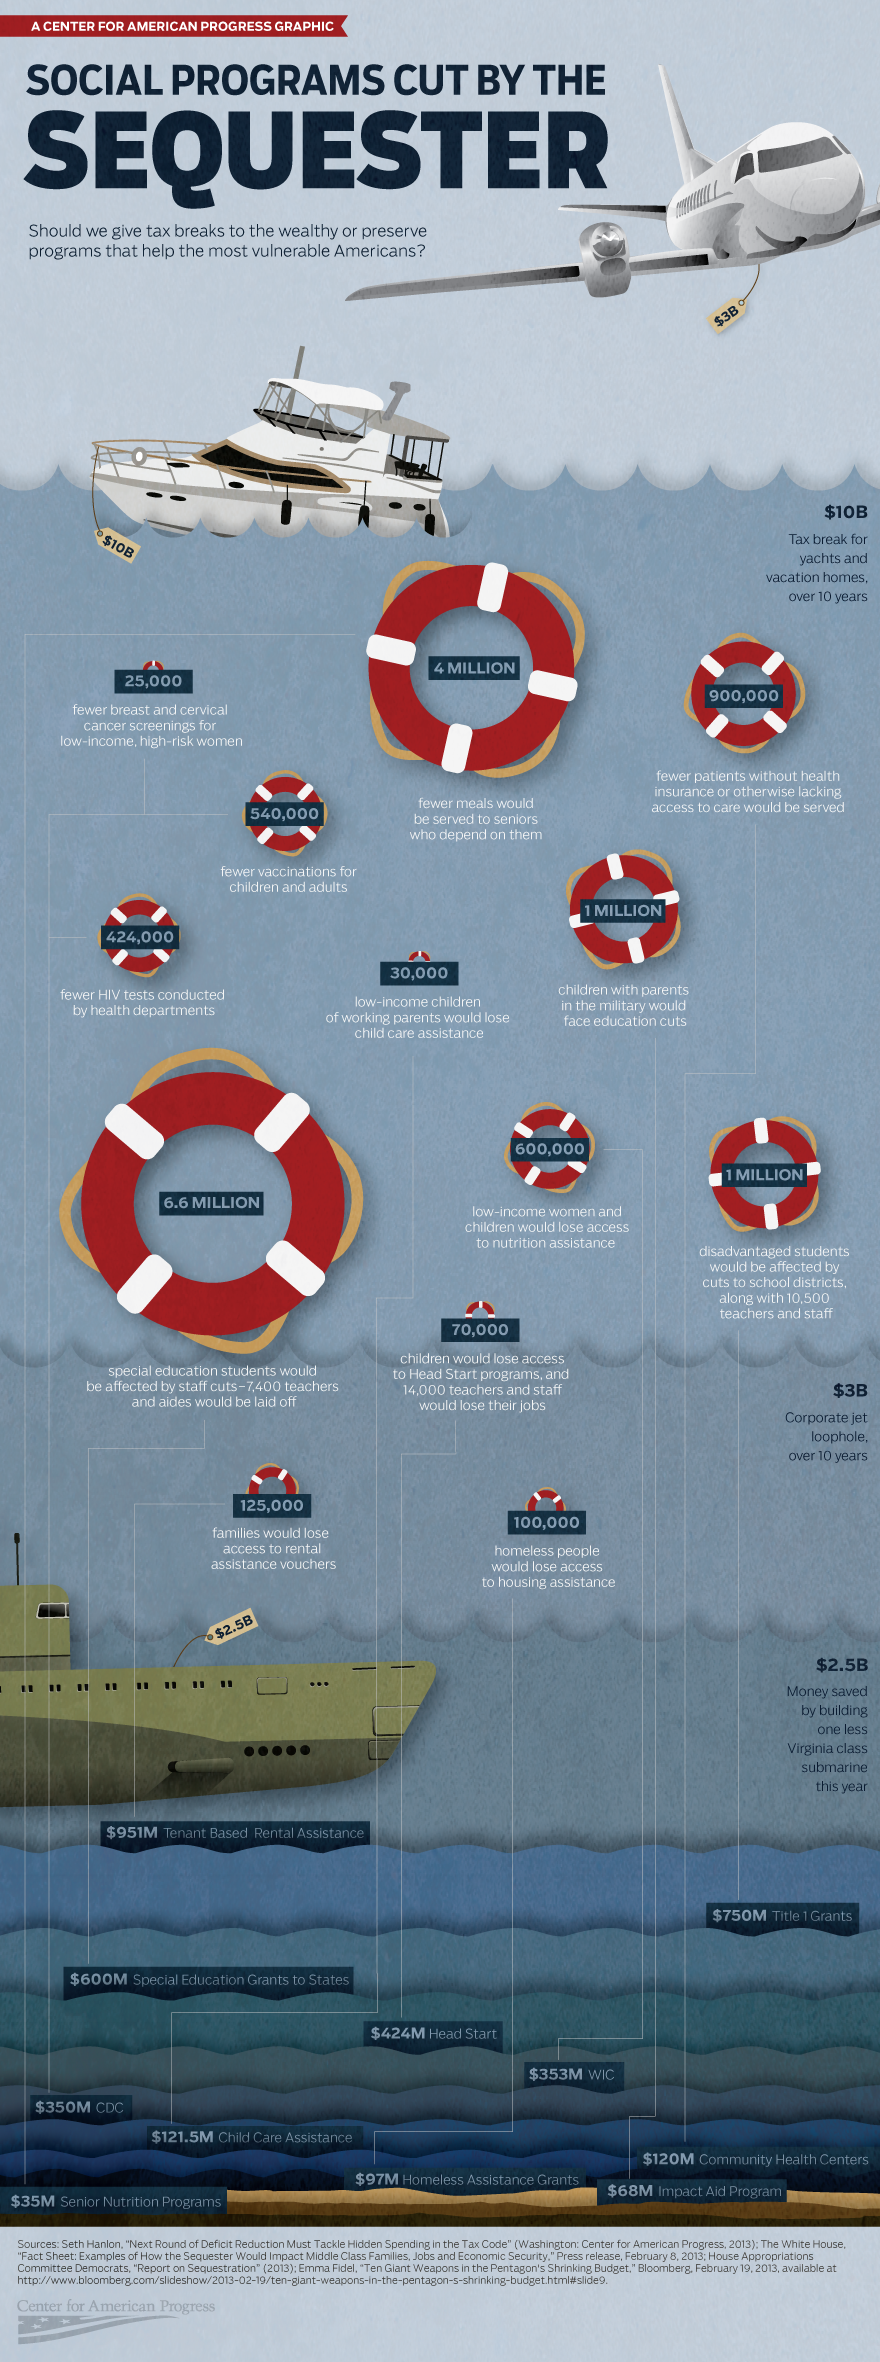 Sequester infographic